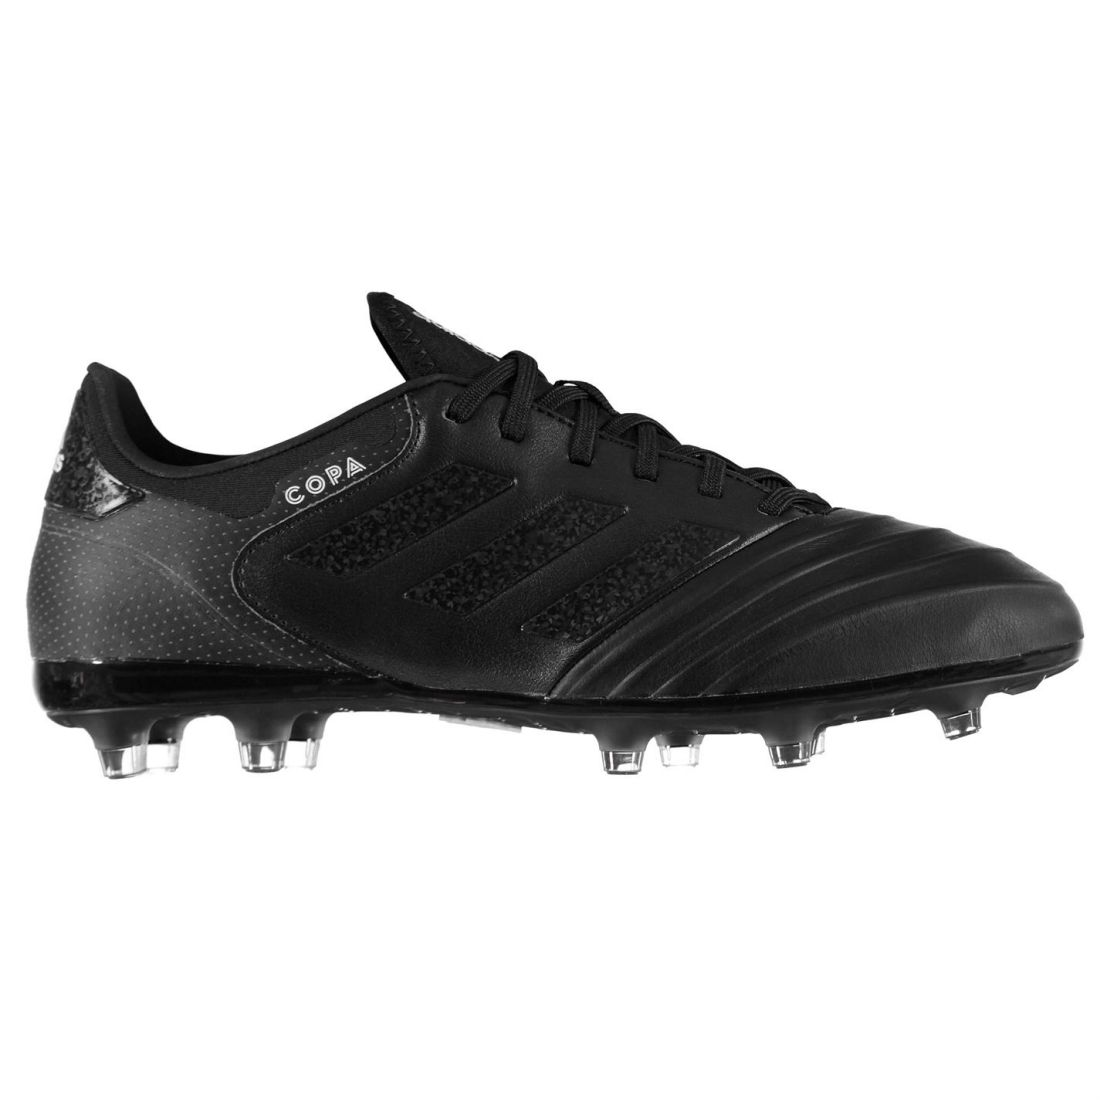 finest selection 88940 617a9 adidas Copa 18.2 FG Football Boots Mens Gents Firm Ground Laces Fastened  Padded